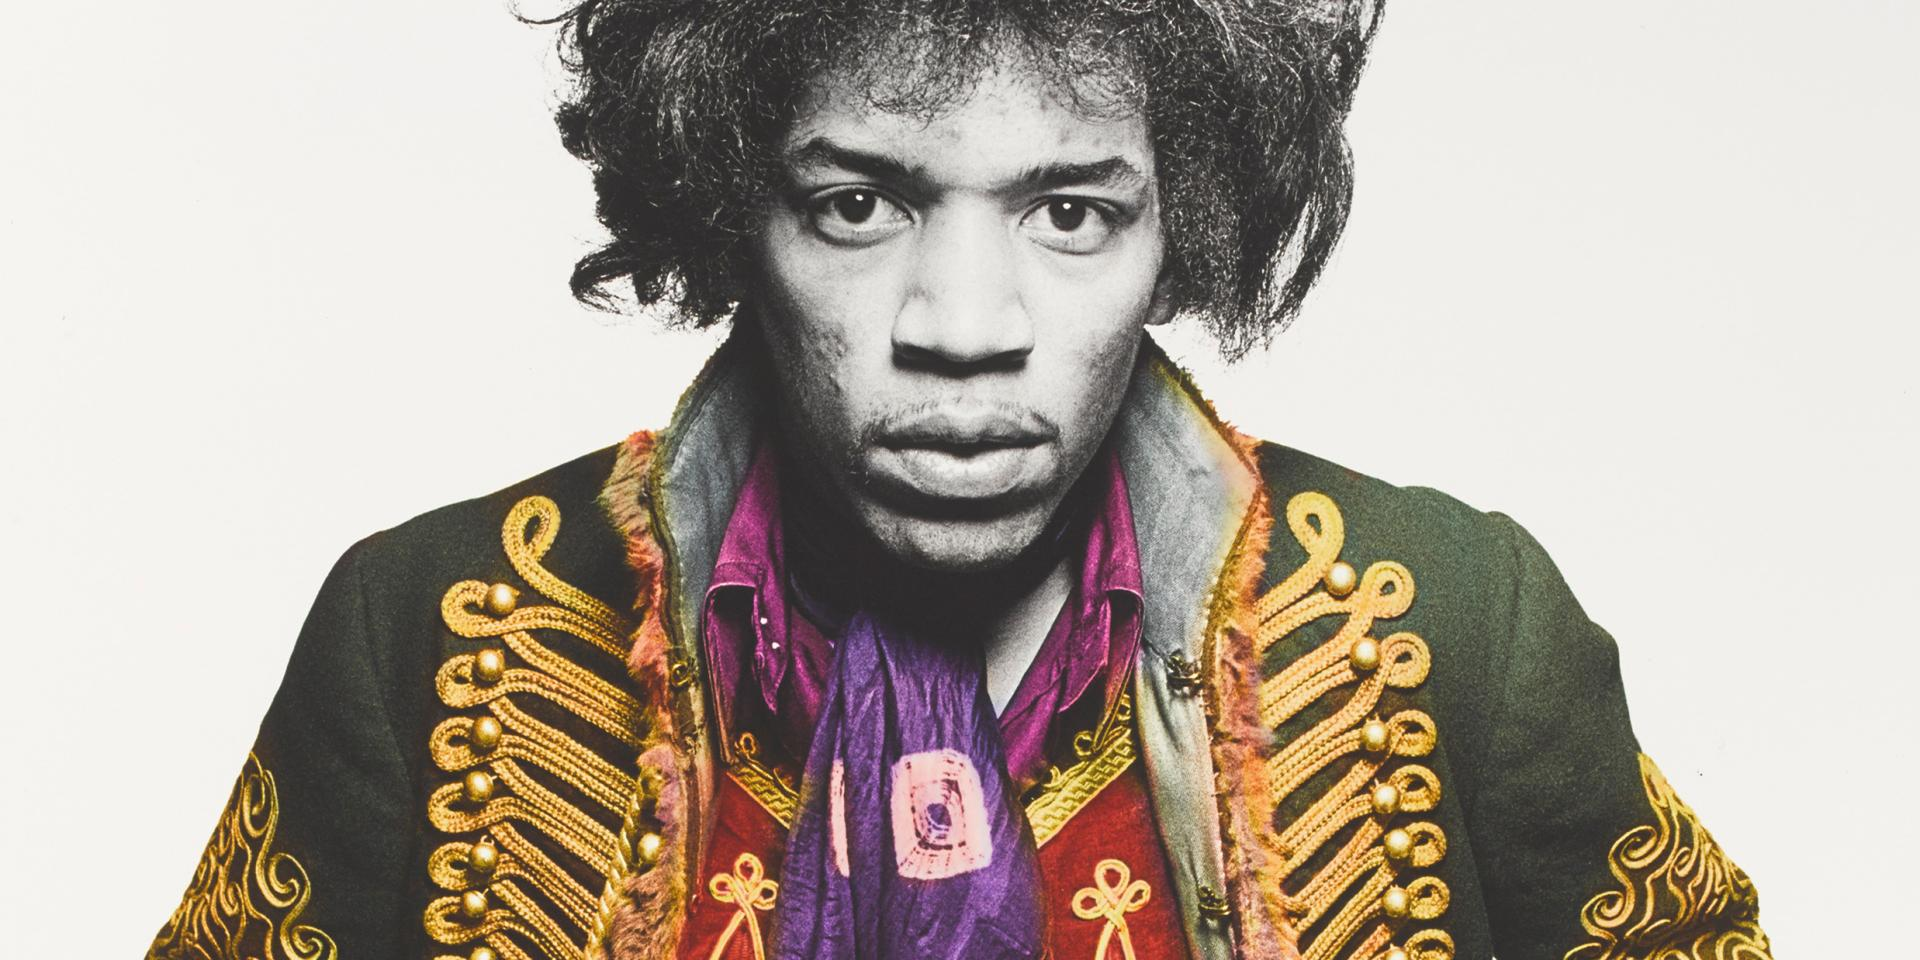 Jimi Hendrix photographed by Gered Mankowitz, 1967